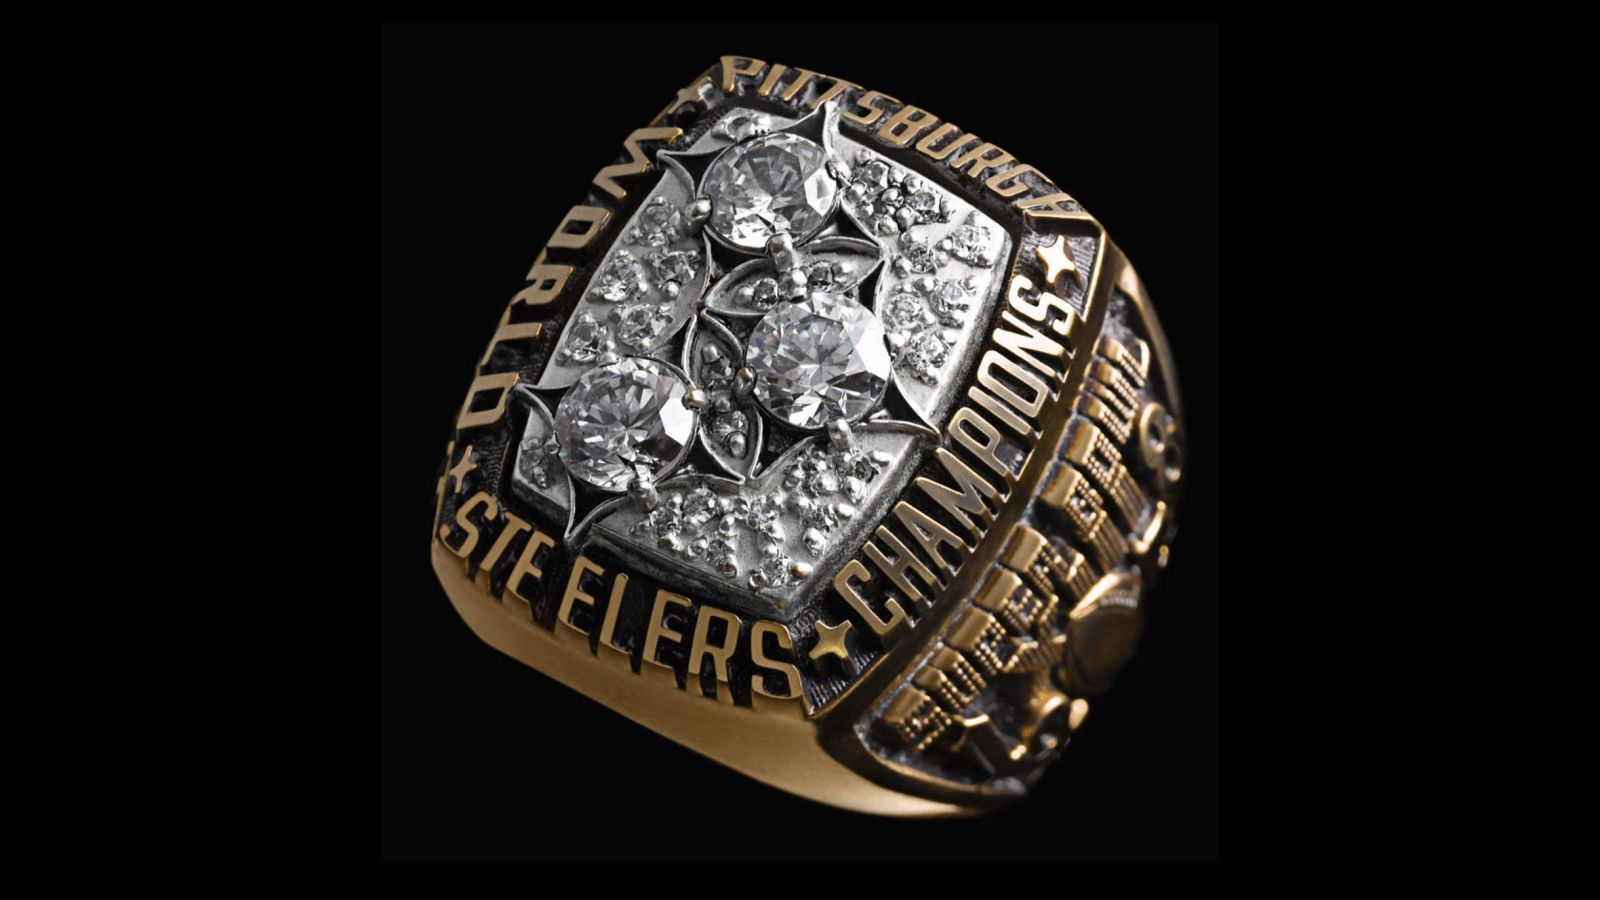 1978 Pittsburgh Steelers World Championship Ring